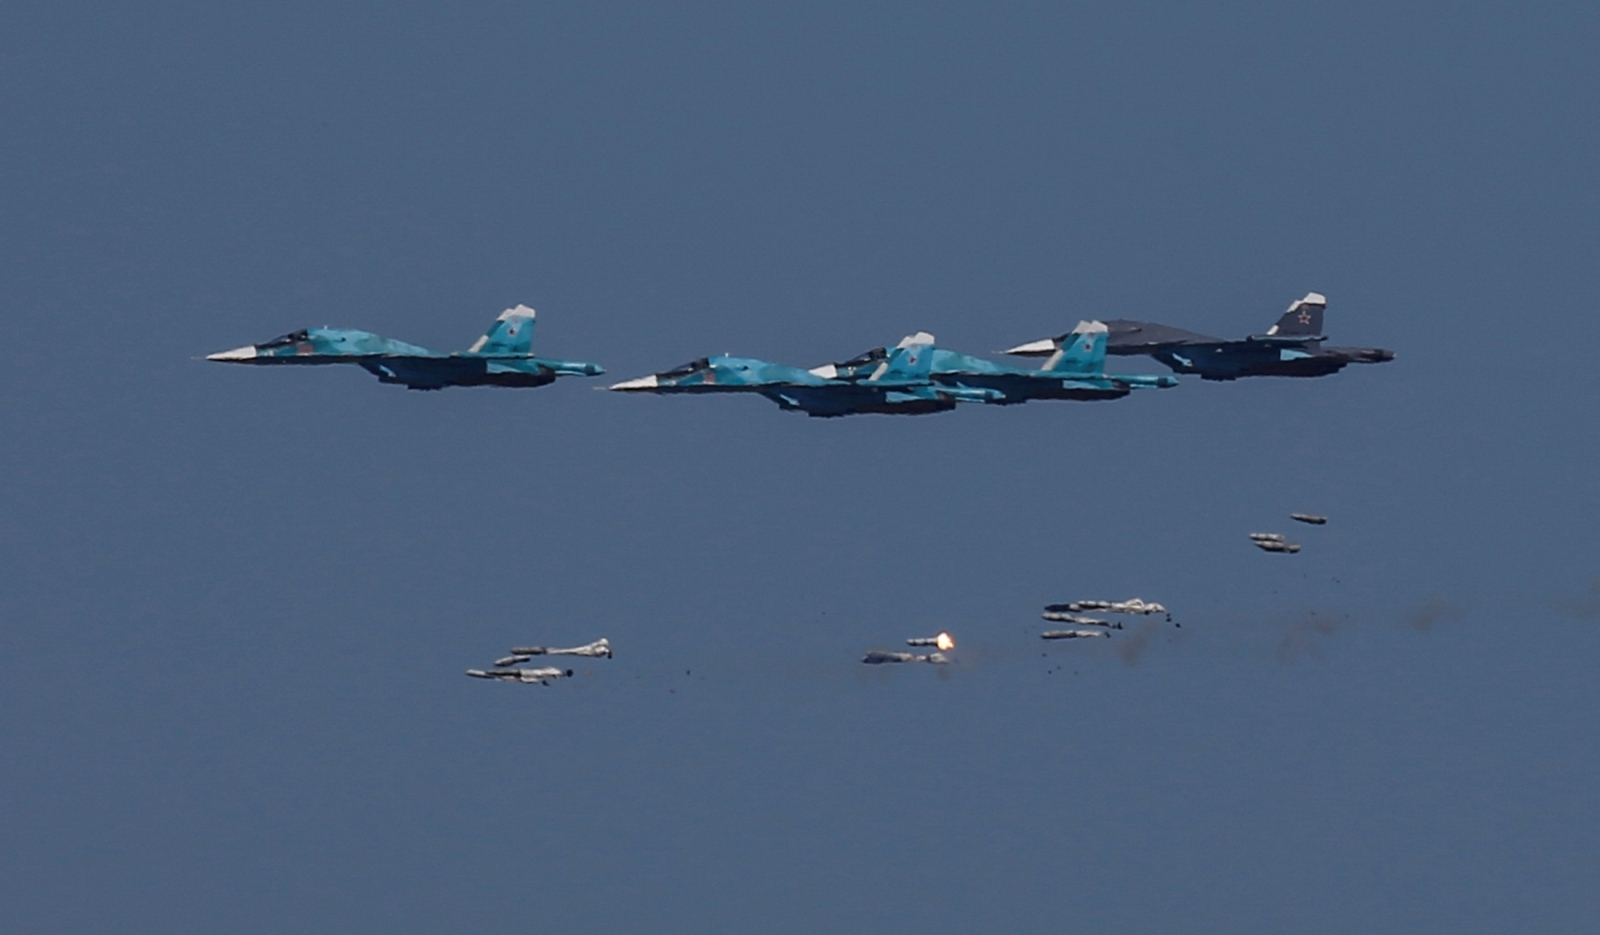 Russian Federation sends nuclear-capable bombers on mission near South Korea, Japan